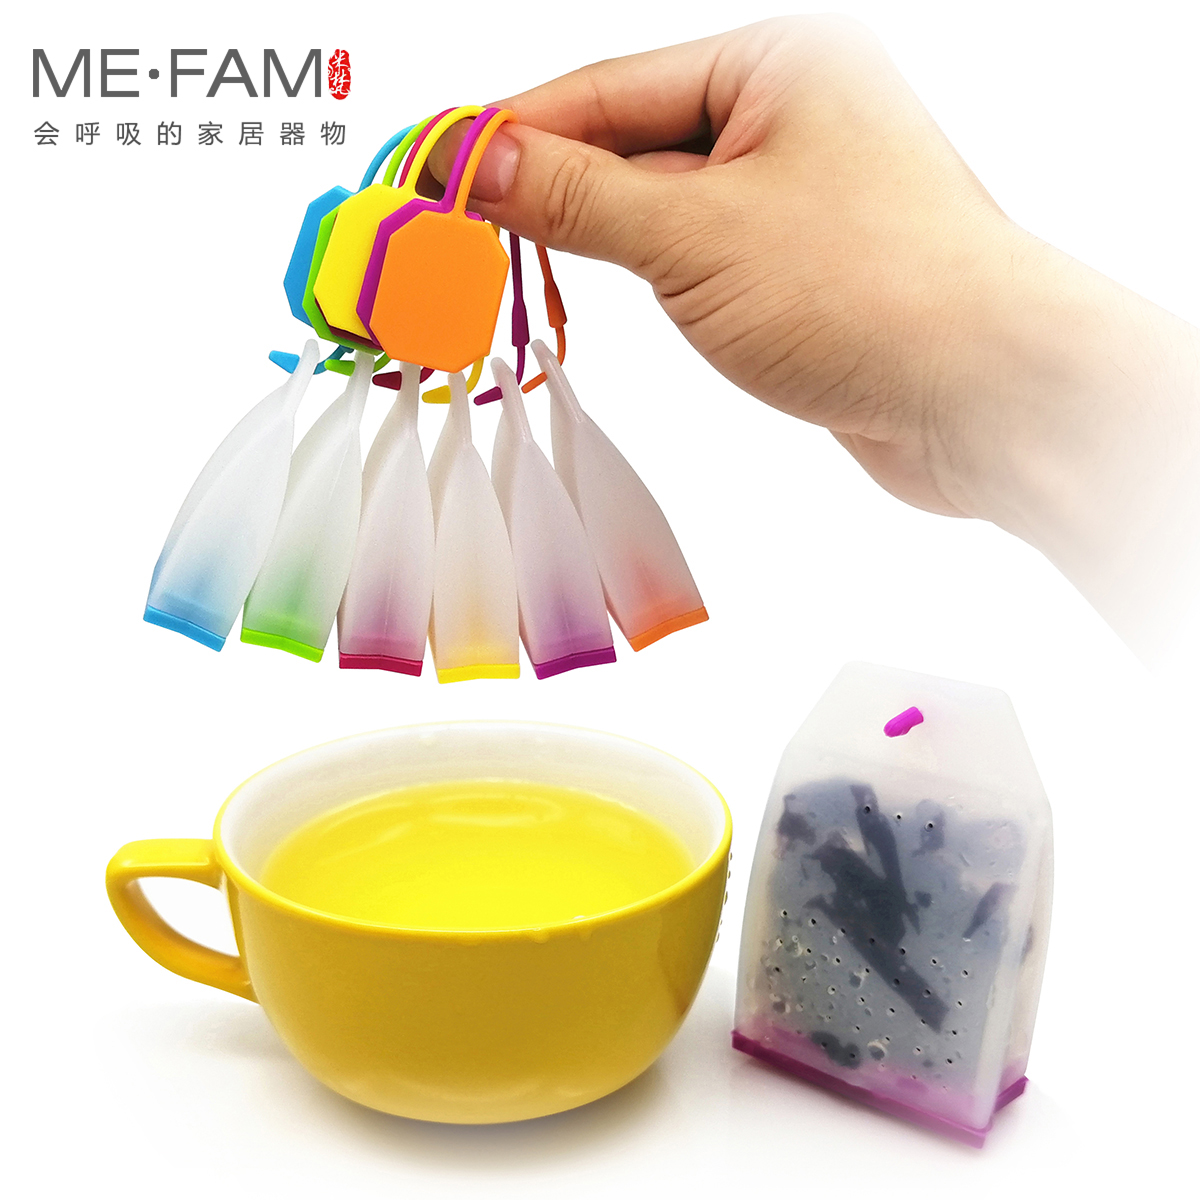 ME FAM Jelly Silicone Tea Bag Safe Eco Friendly Non toxic Reusable Tea leaves Infuser Filter Herbal Spice Strainer Tool Set of 3 in Tea Infusers from Home Garden